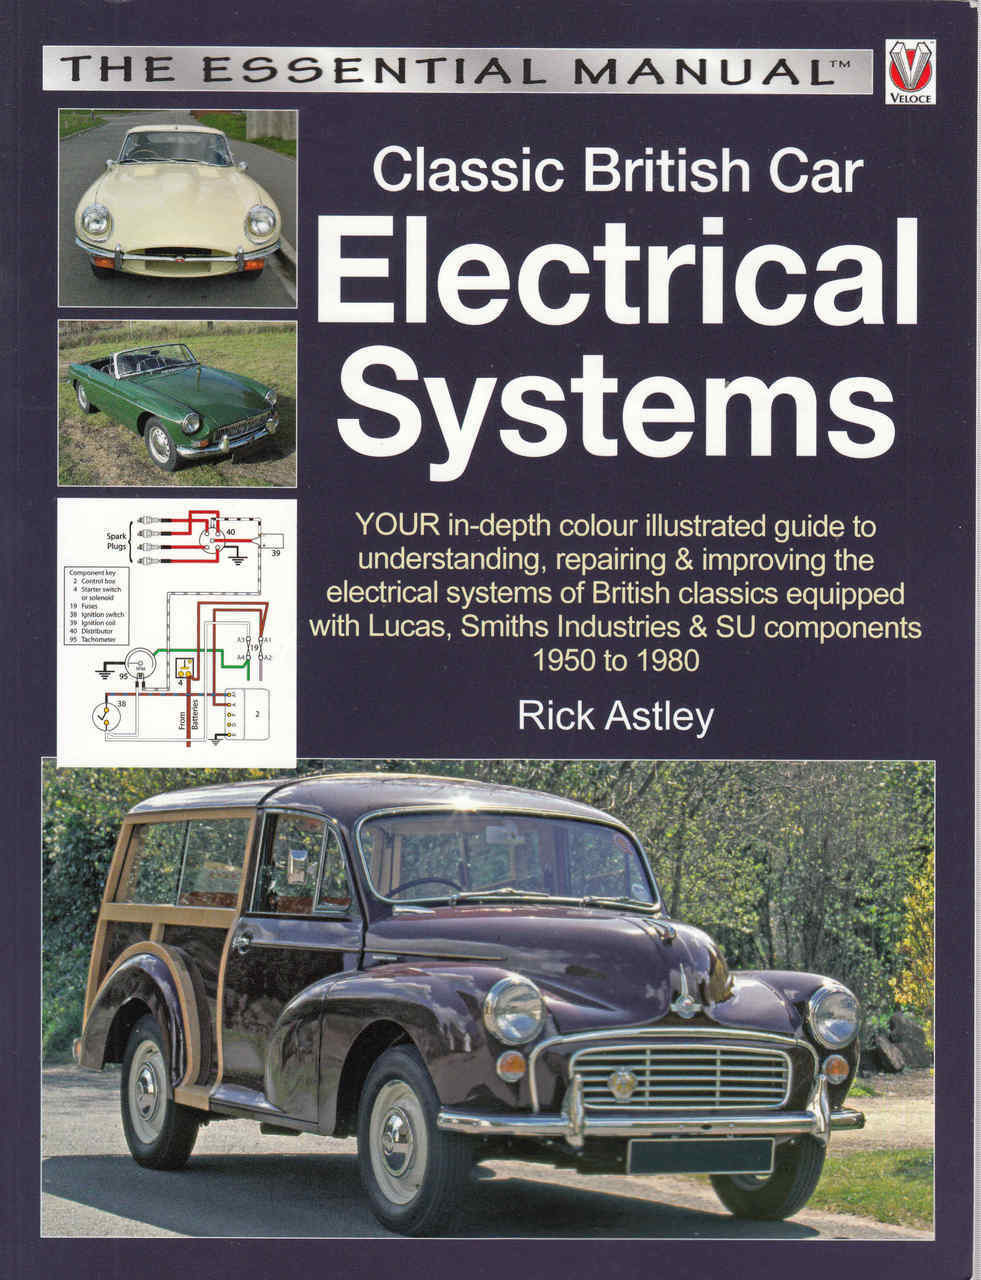 Classic British Car Electrical Systems The Essential Manual Reprint - Classic car guide